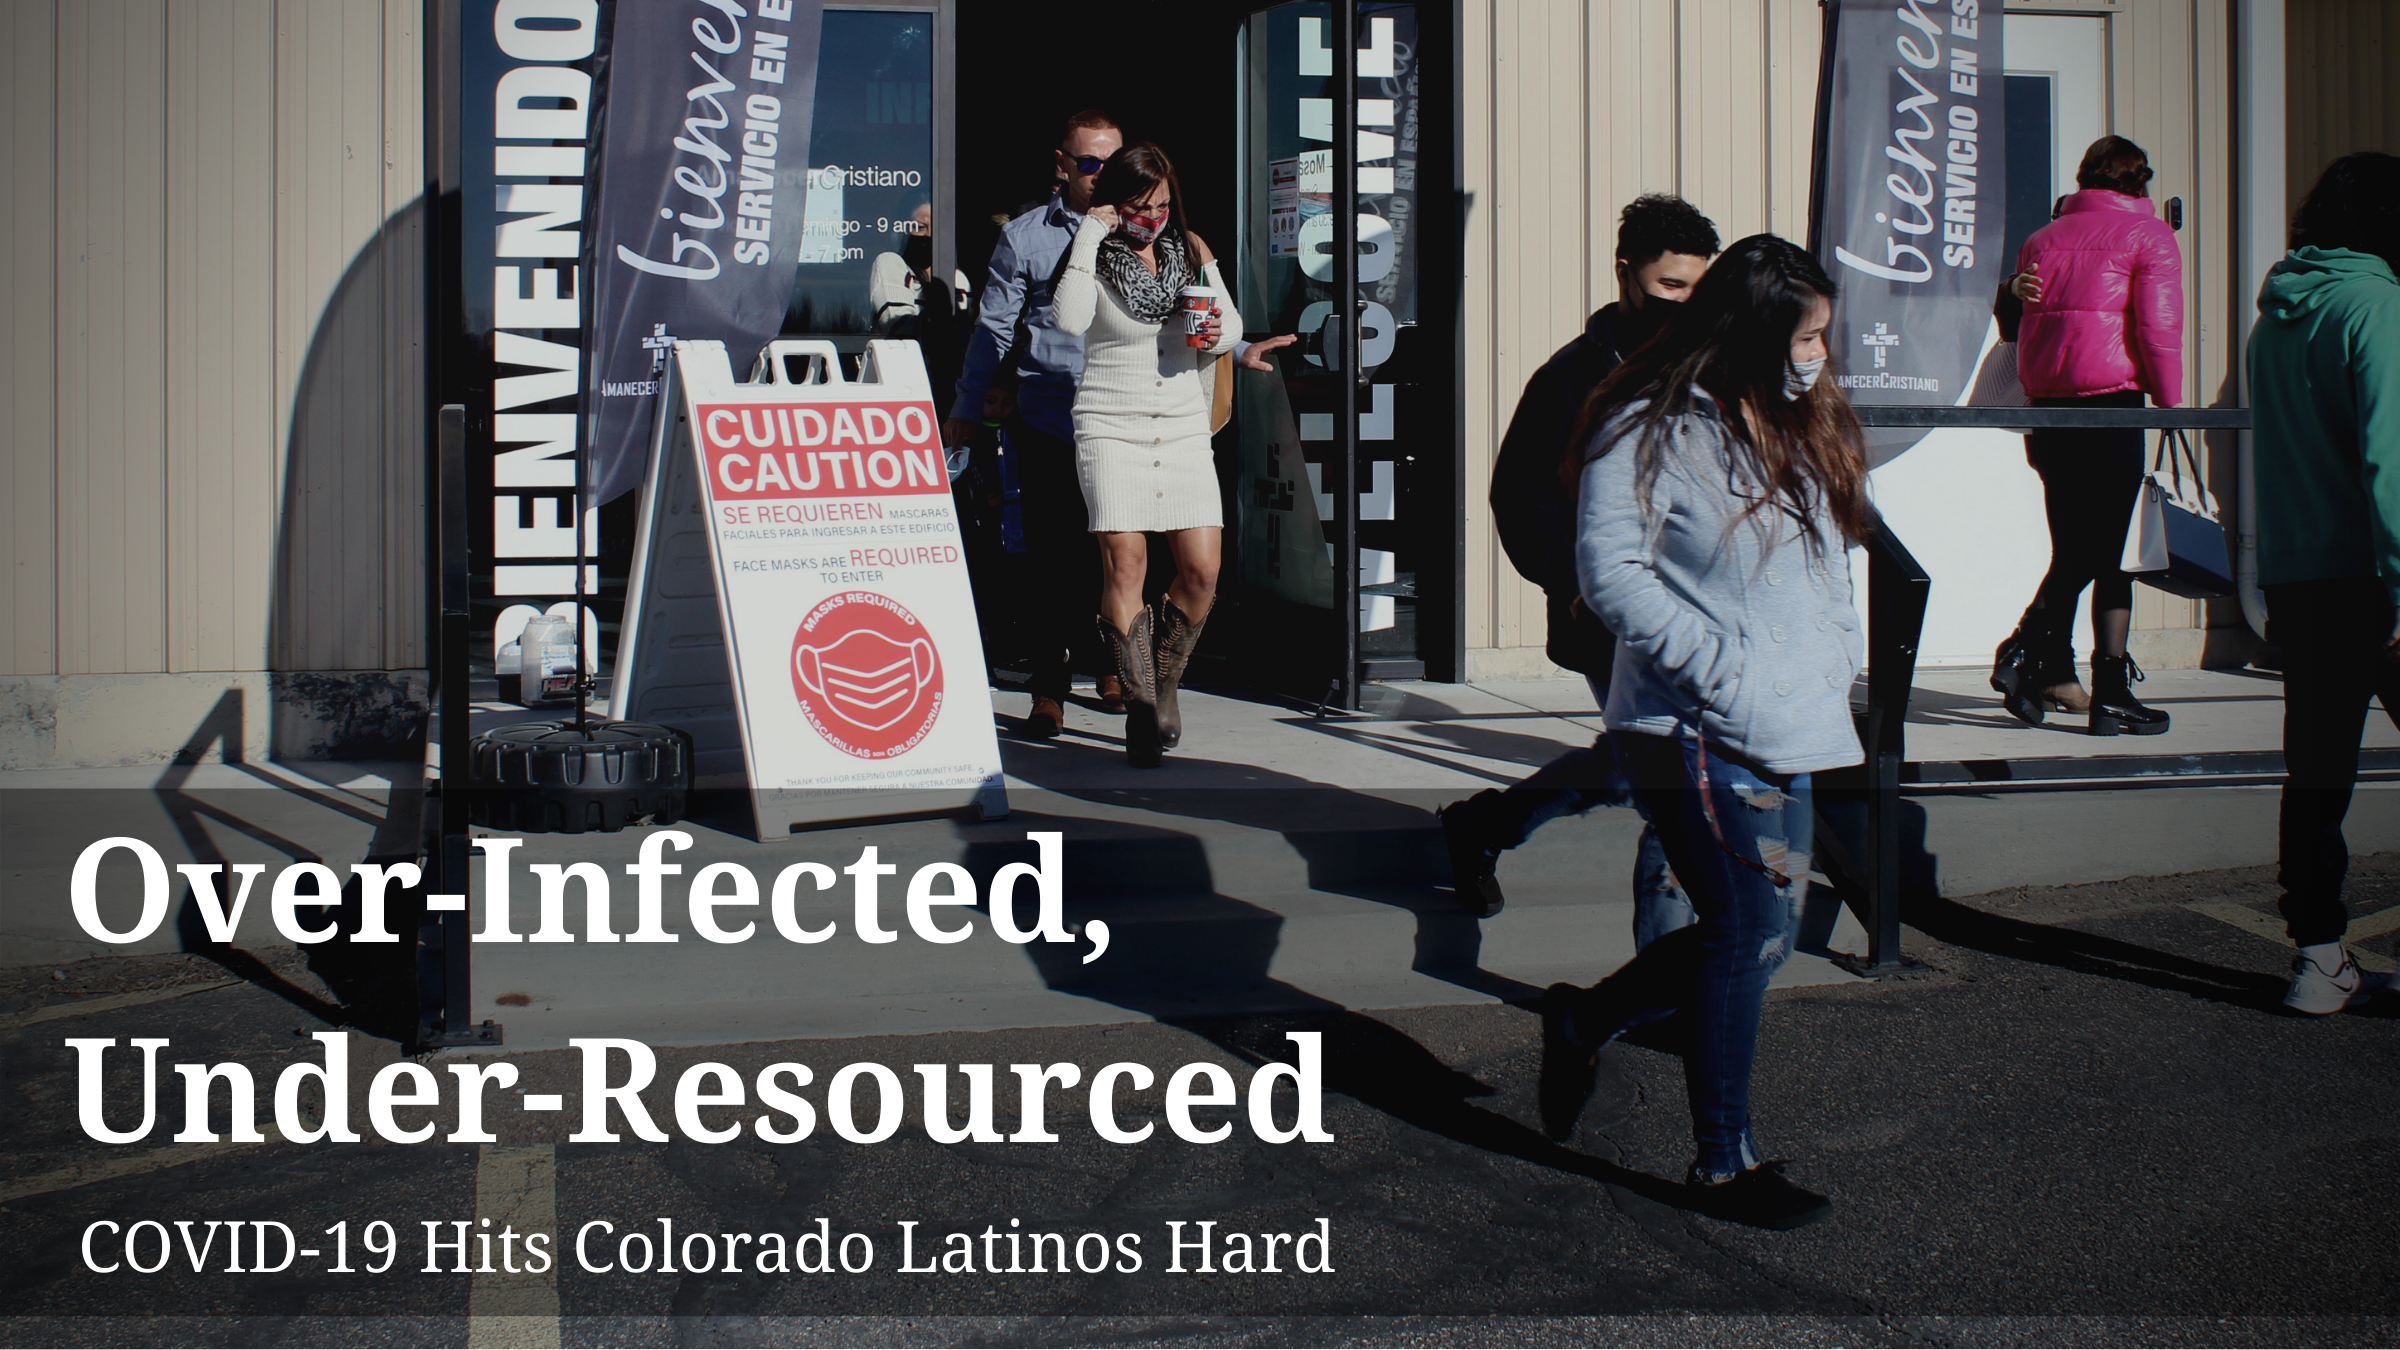 Over-Infected, Under-Resourced: COVID-19 Hits Colorado Latinos Hard